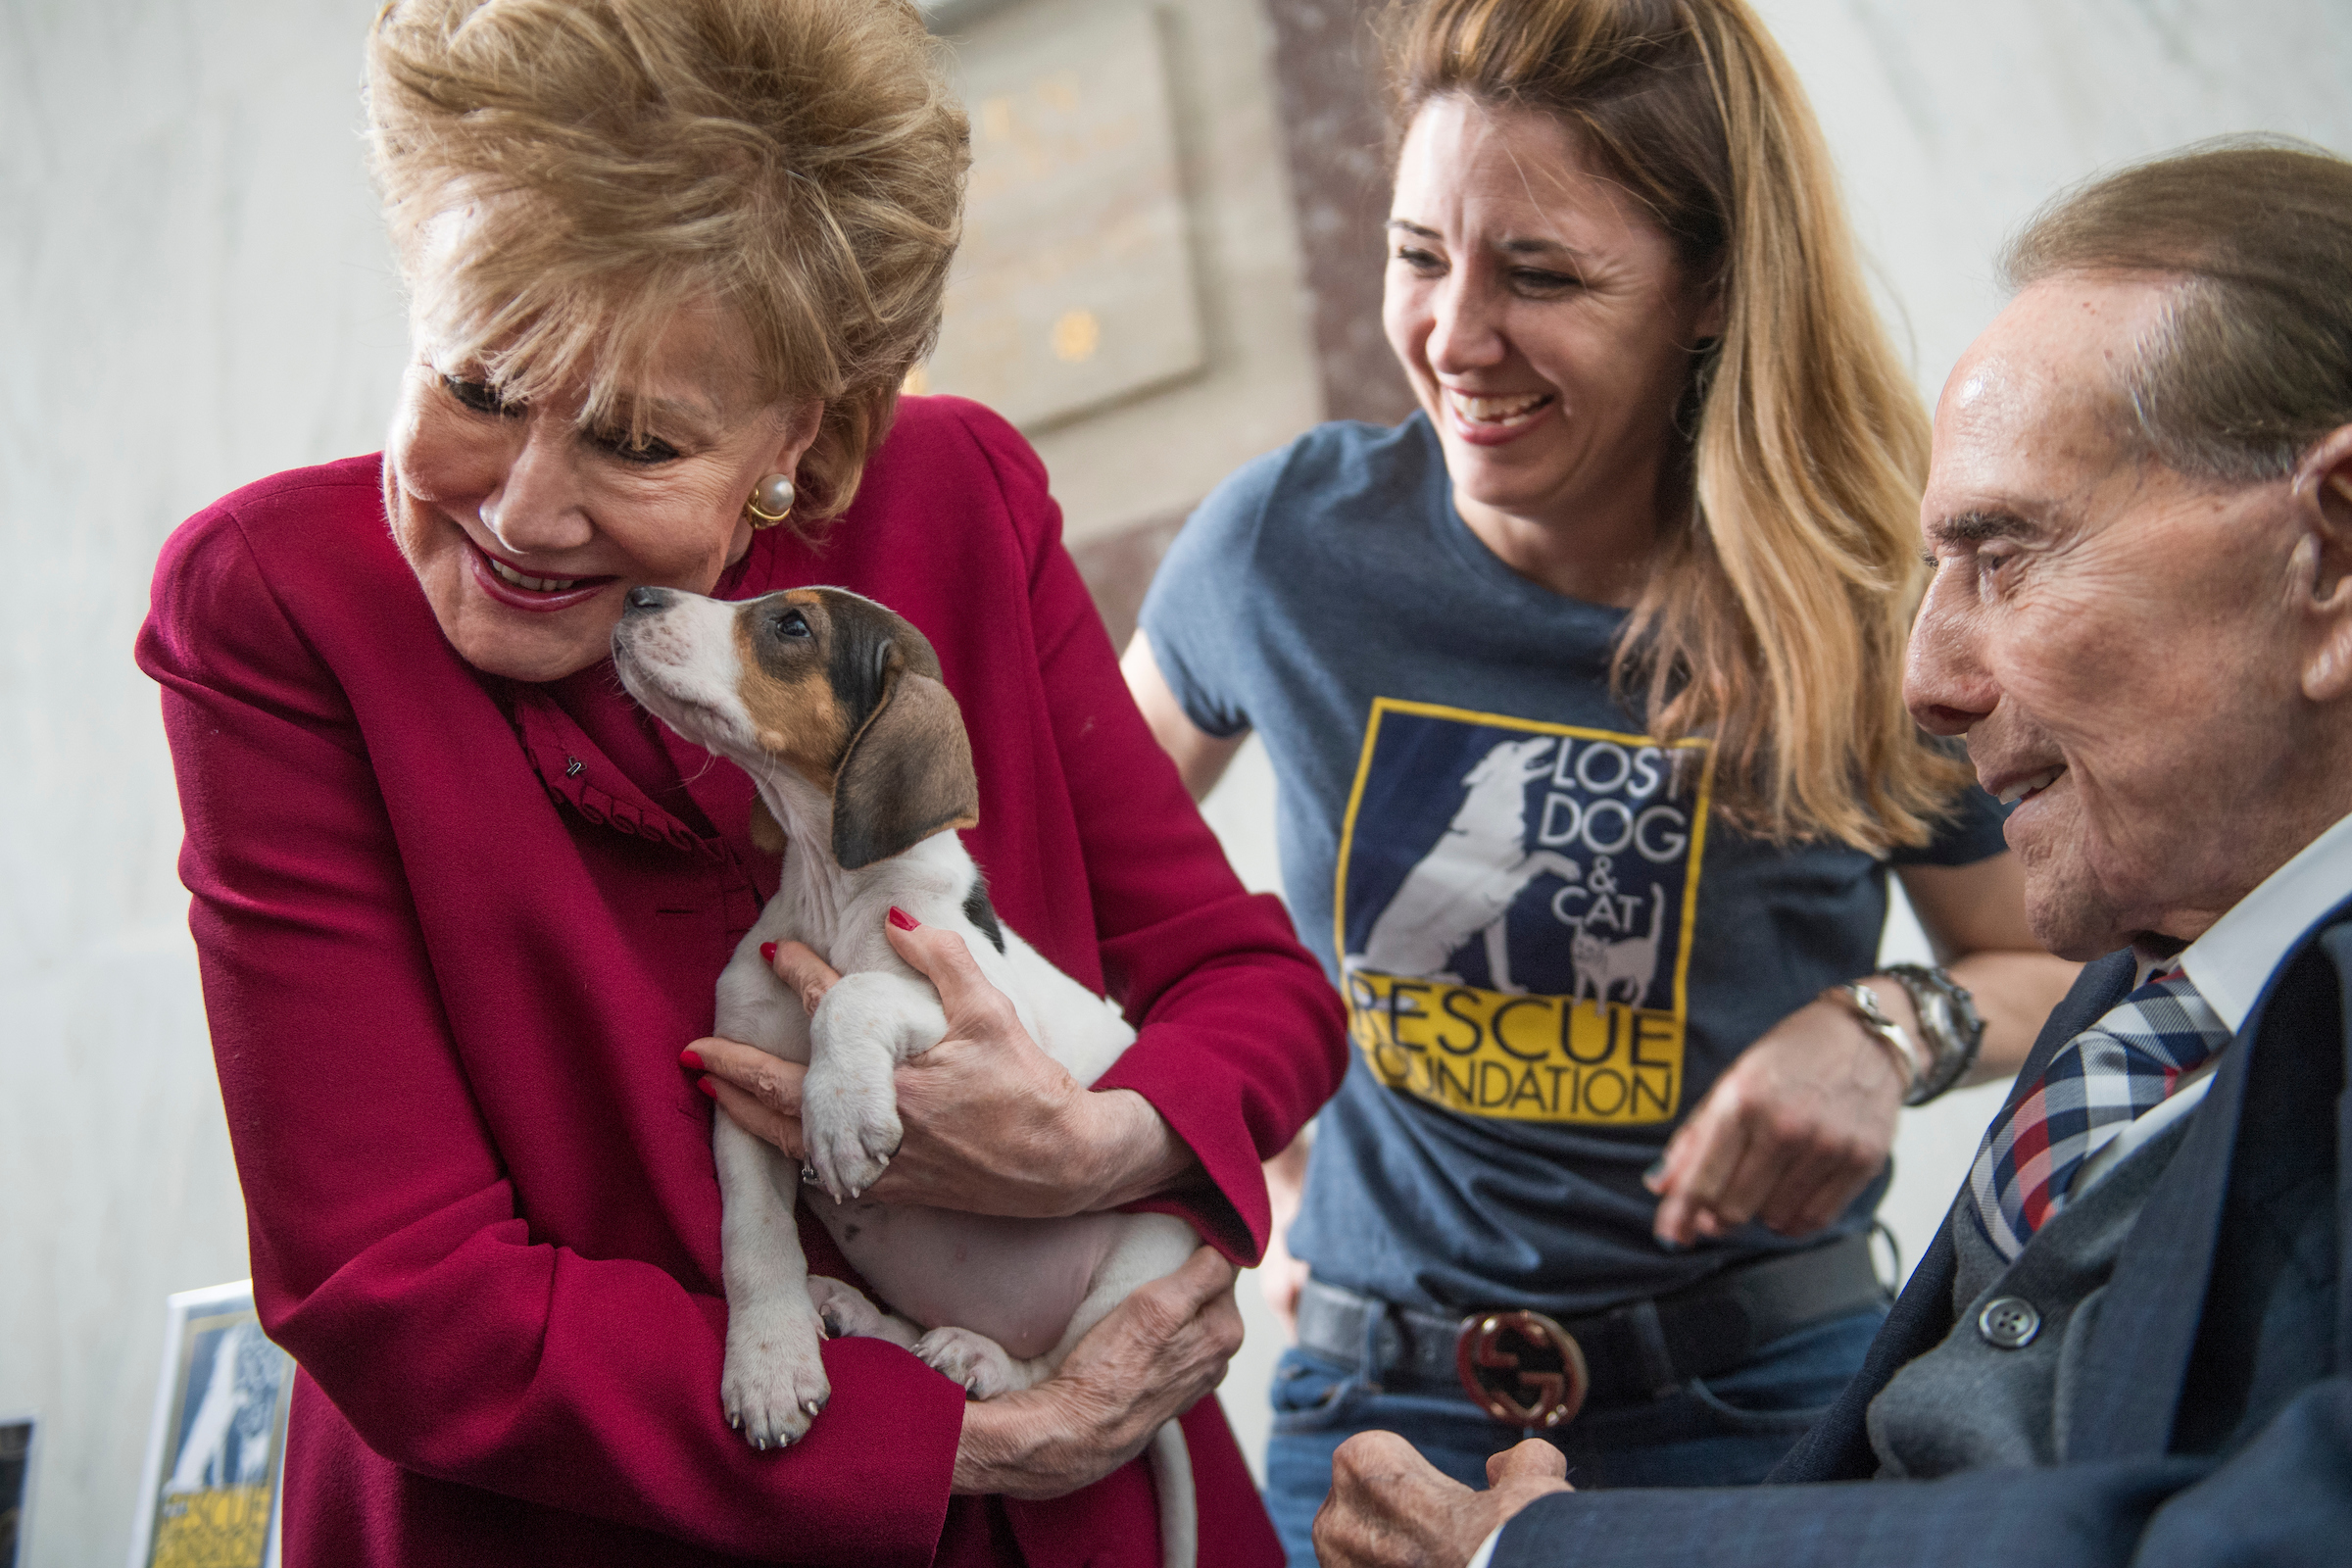 """UNITED STATES - FEBRUARY 14: Former Sen. Bob Dole, R-Kan., and his wife former Sen. Elizabeth Dole, R-N.C., attend the """"Paws for Love,"""" Valentine's Day animal adoption event in Rayburn Building to draw attention to the plight of rescue animals, February 14, 2017. The event was hosted by the ASPCA and the Congressional Animal Protection Caucus. (Photo By Tom Williams/CQ Roll Call)"""